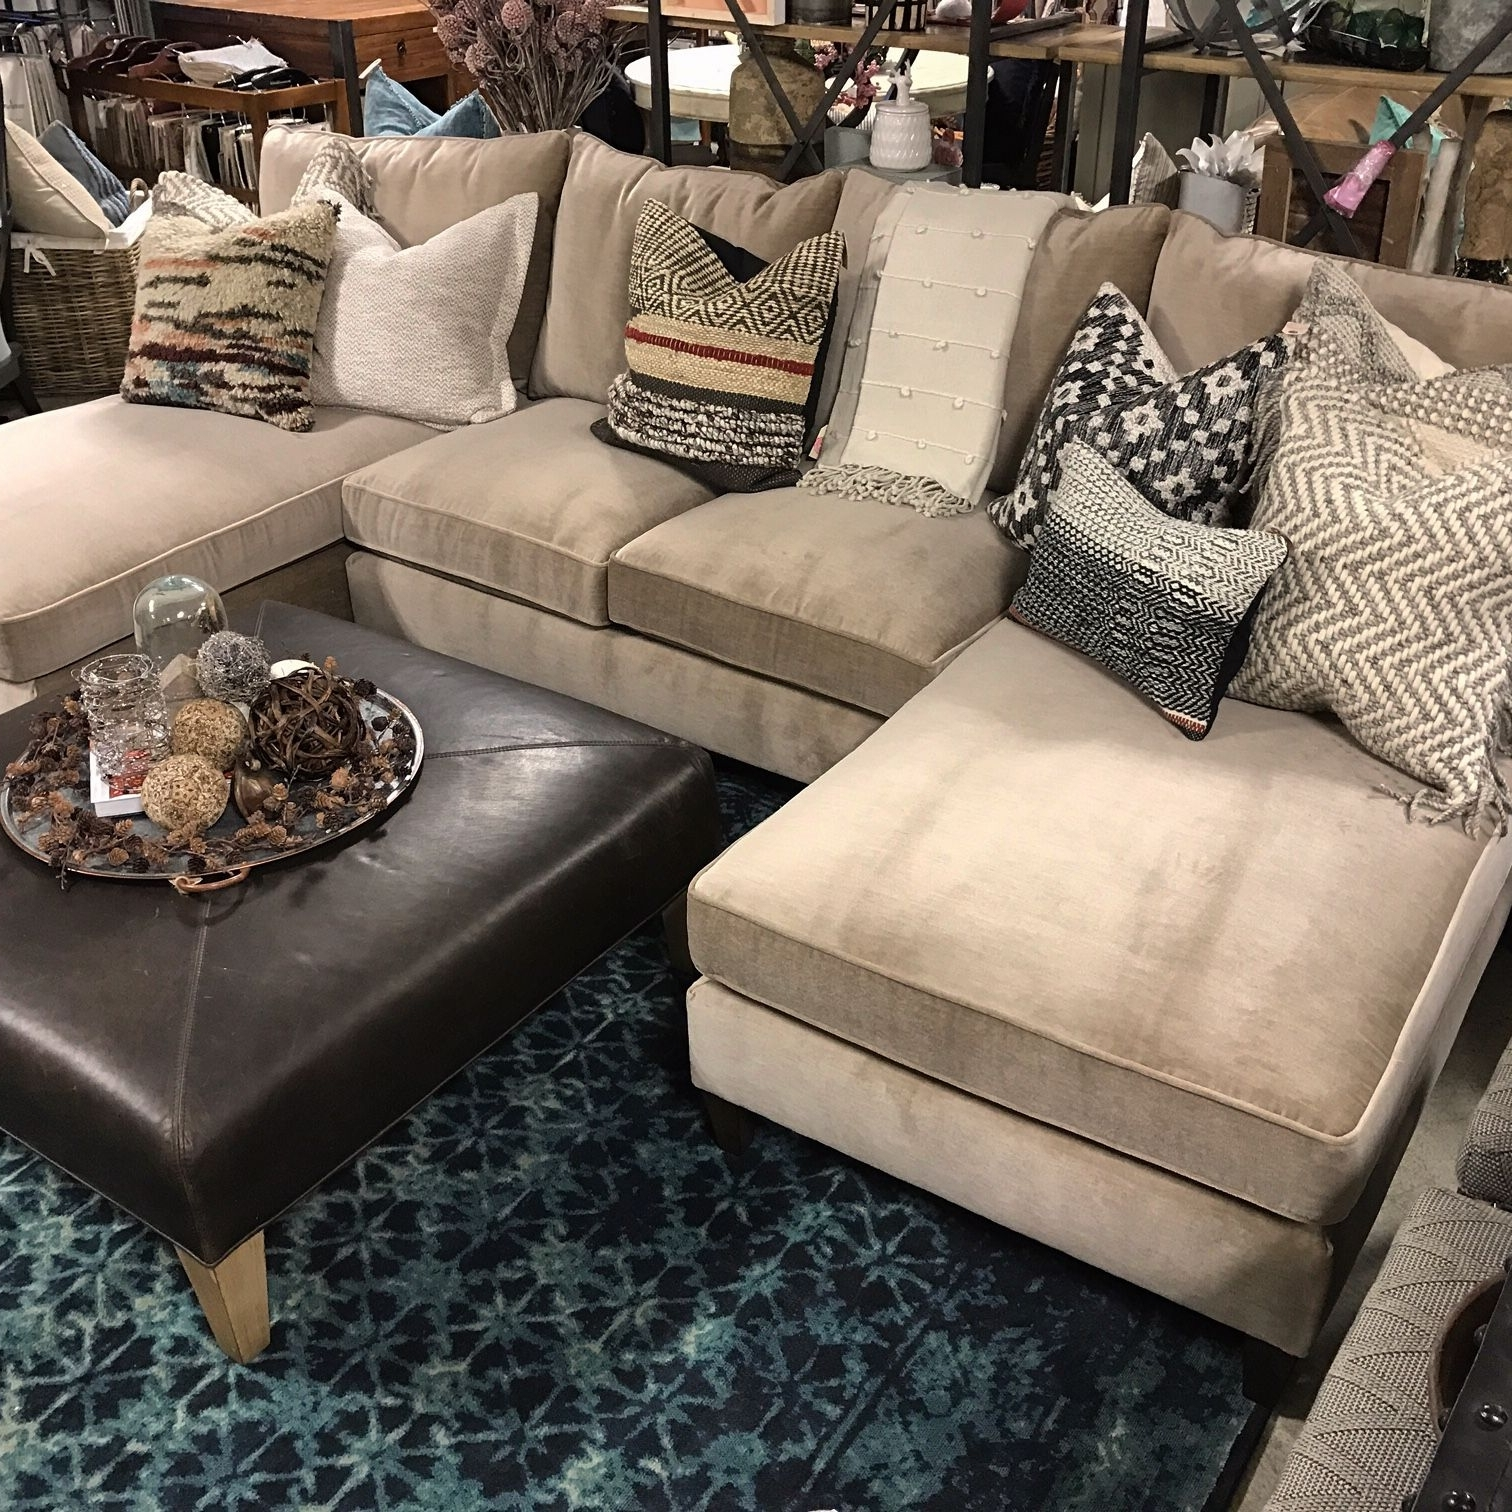 Latest You Can't Go Wrong With A Double Chaise End Sectional! The Melania Inside Sectional Sofas With Double Chaise (View 9 of 15)